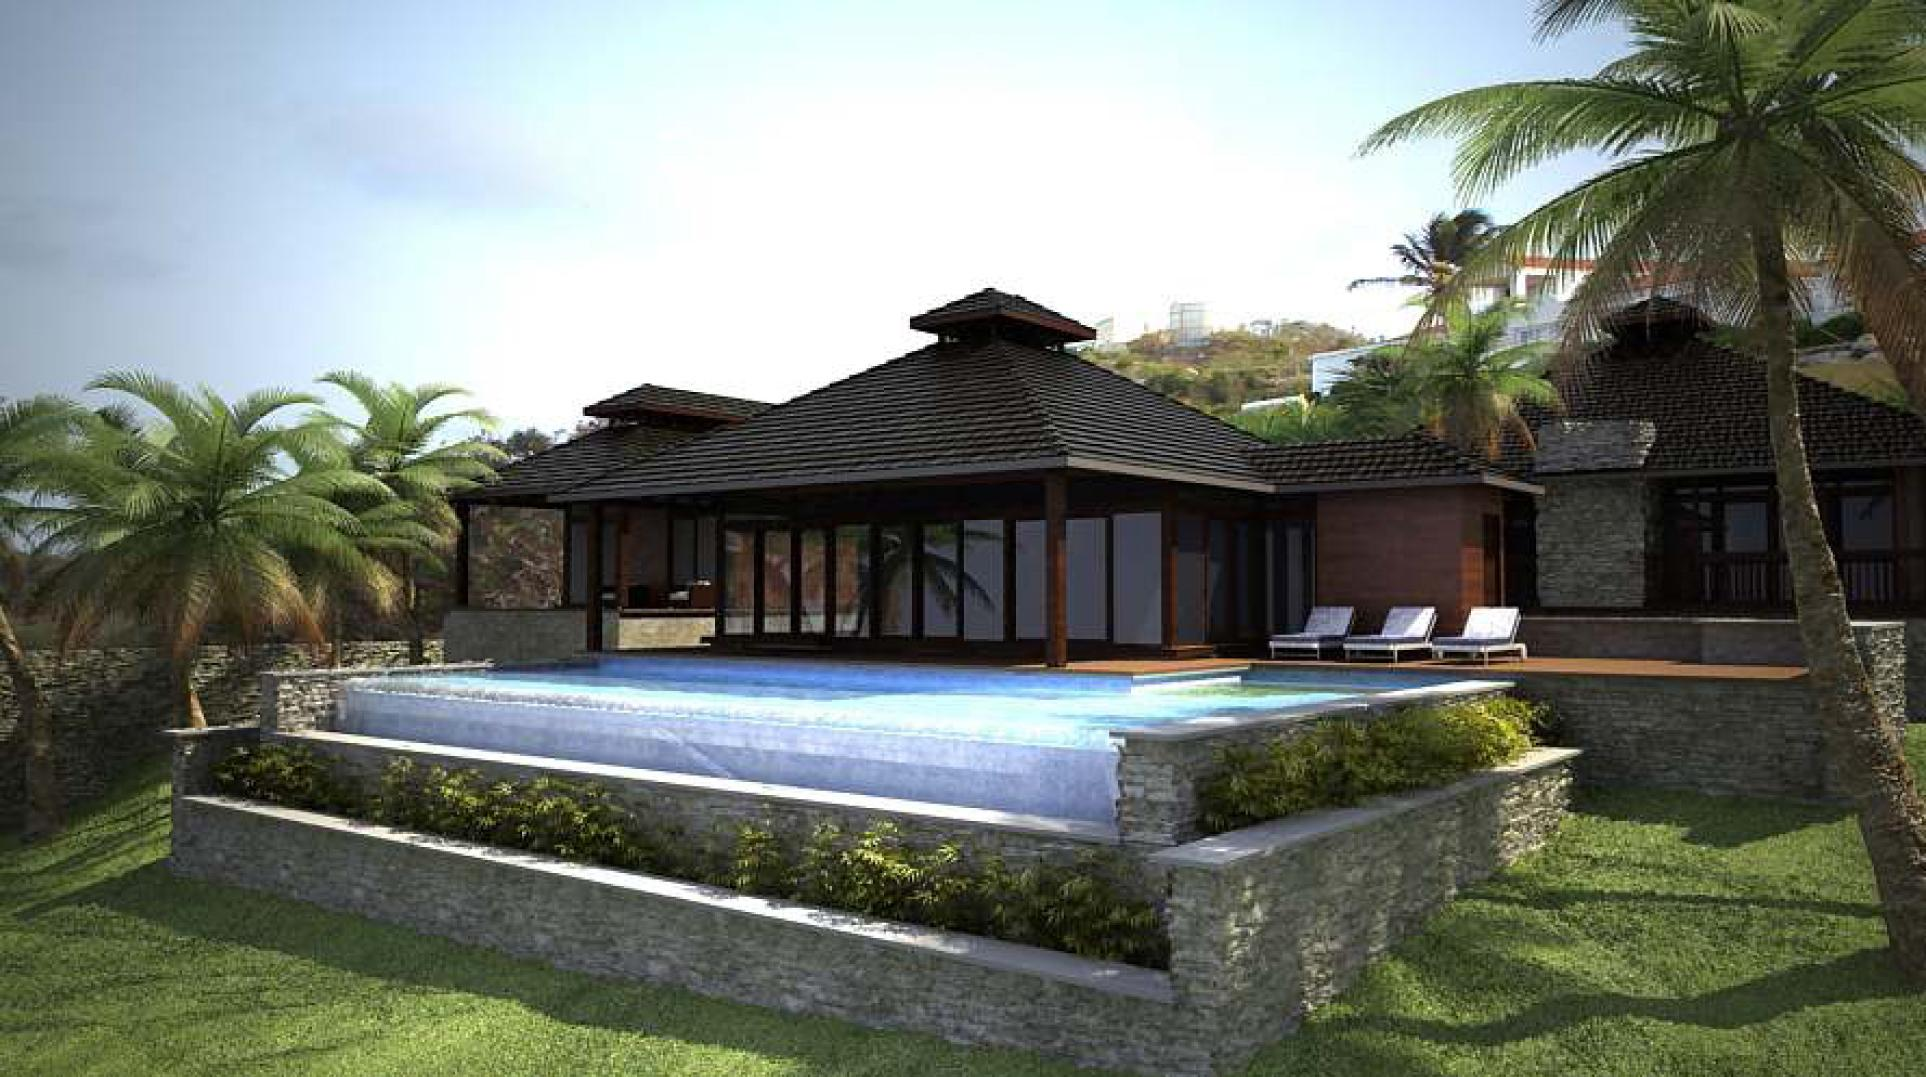 Design building services for bali lombok lembongan and for Bali style homes to build